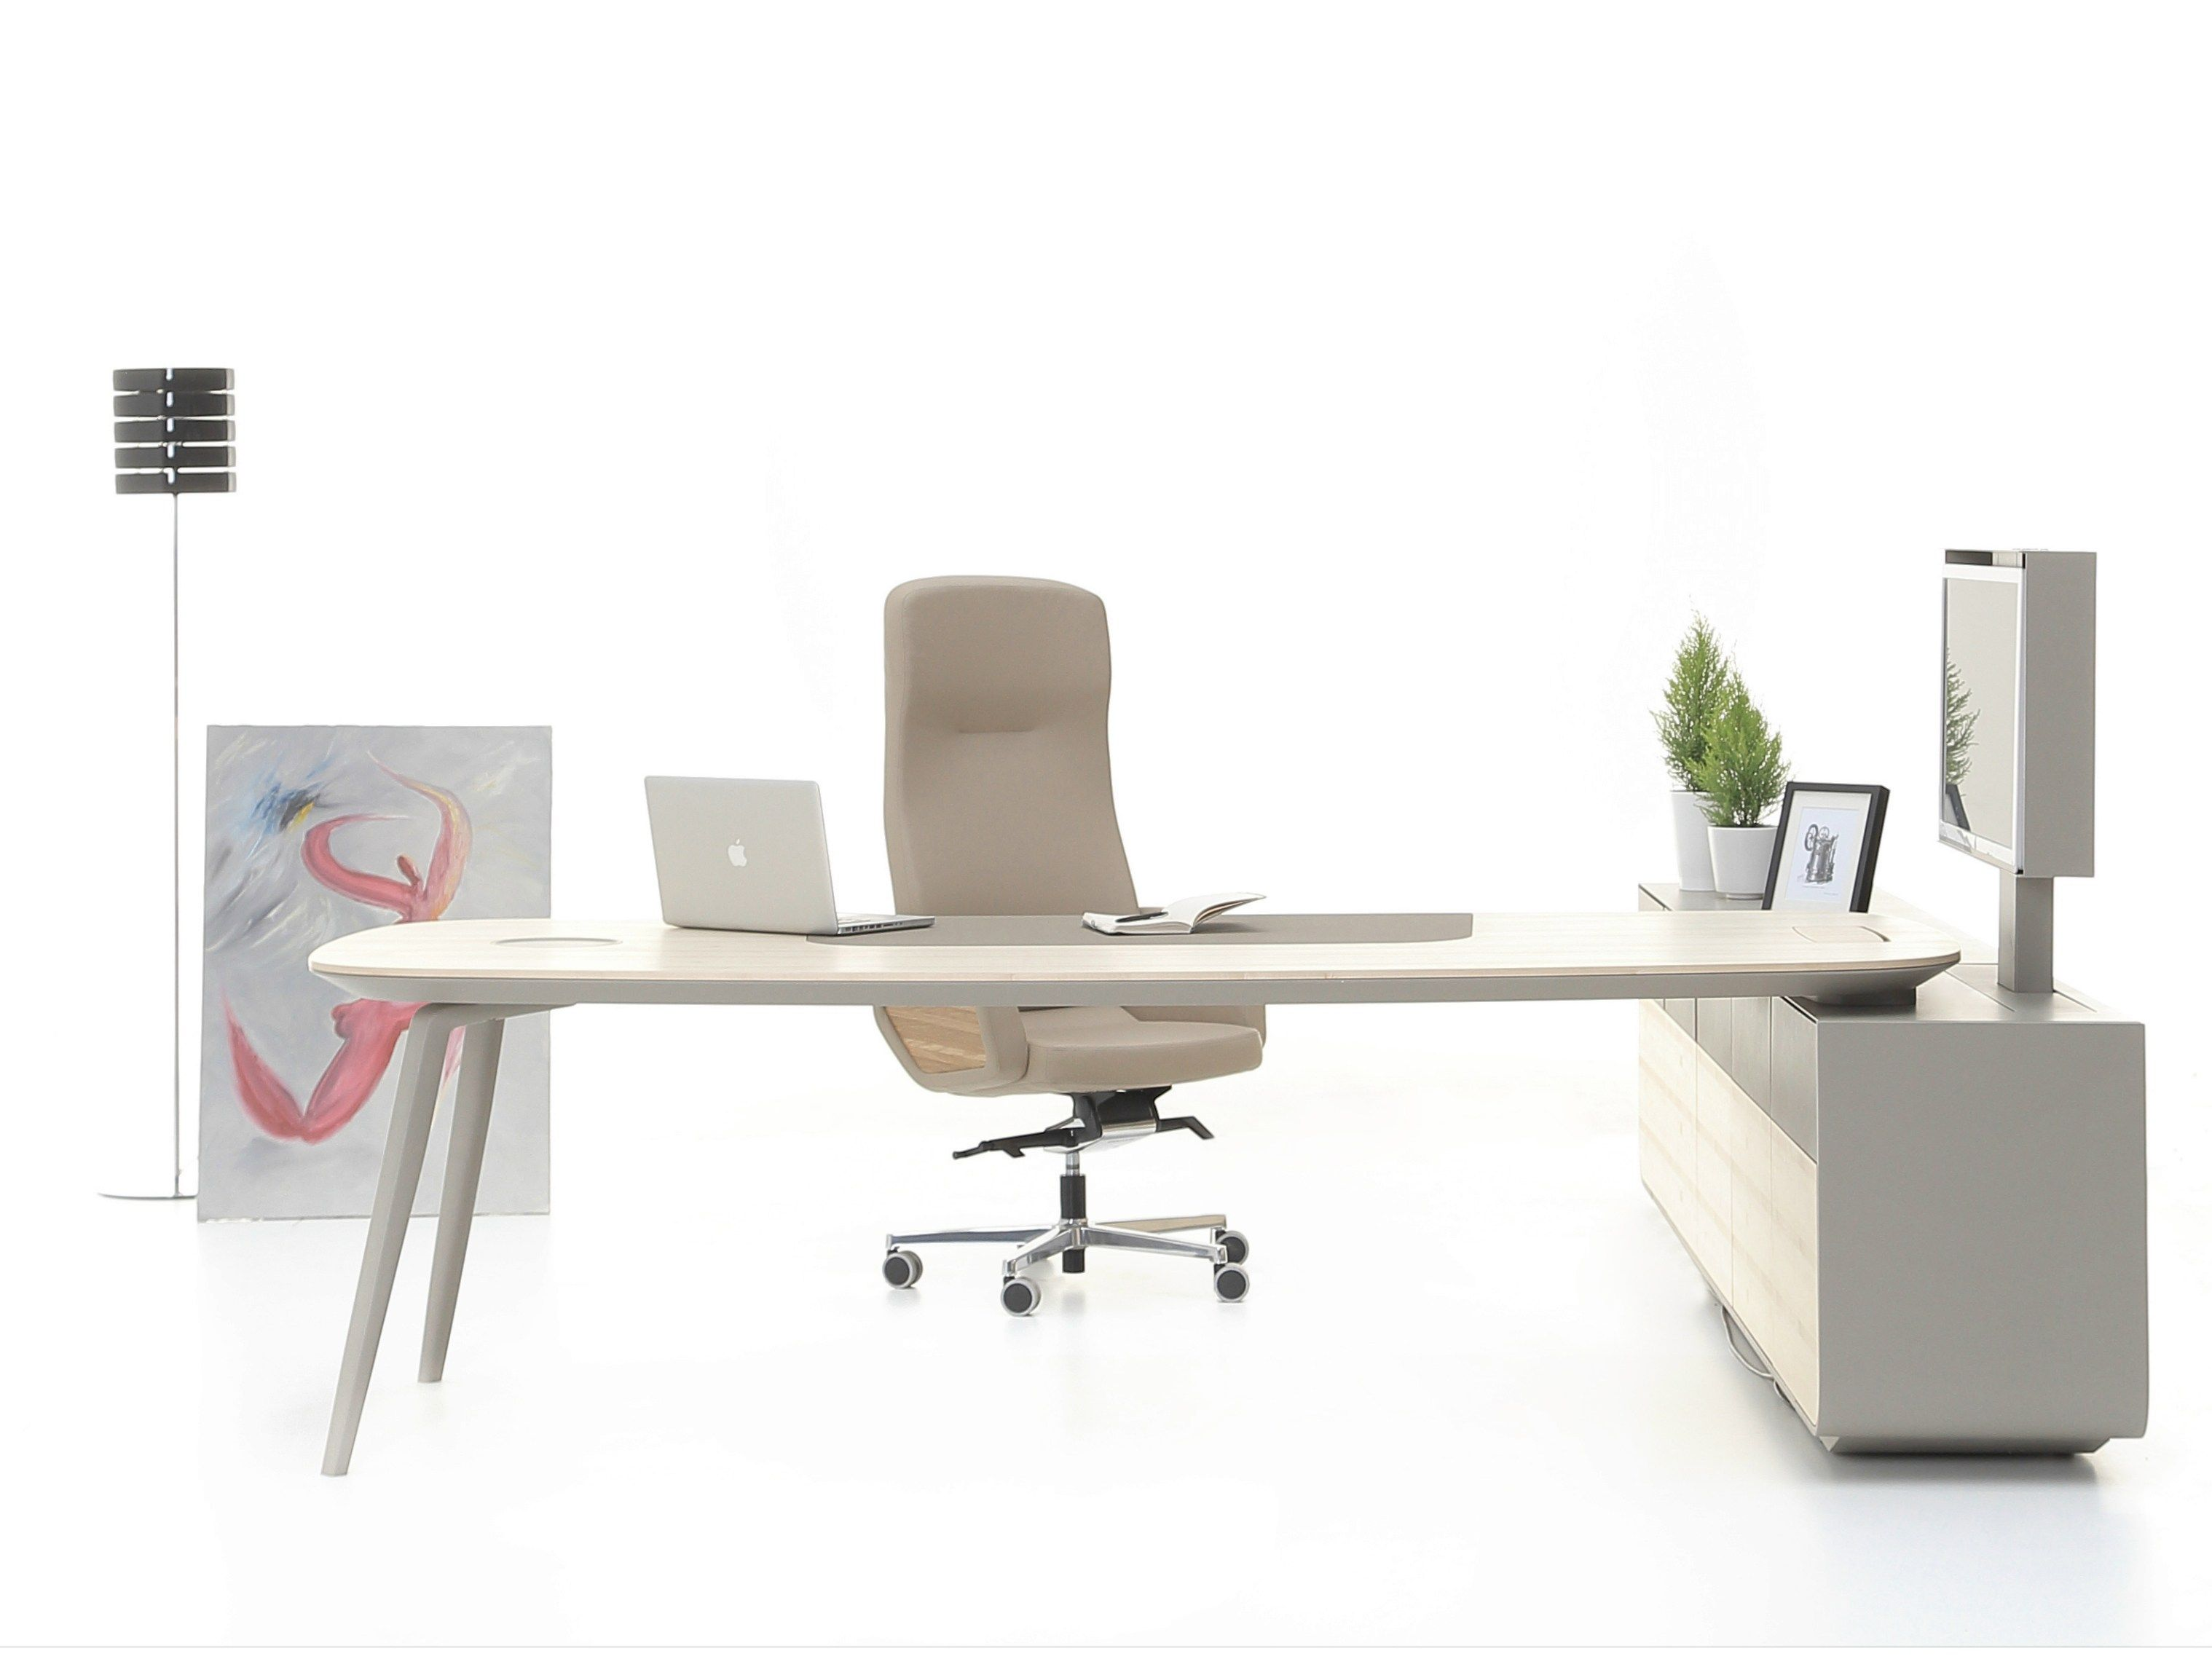 ASHBURY Office Desk With Shelves By NURUS Design Stefan Brodbeck